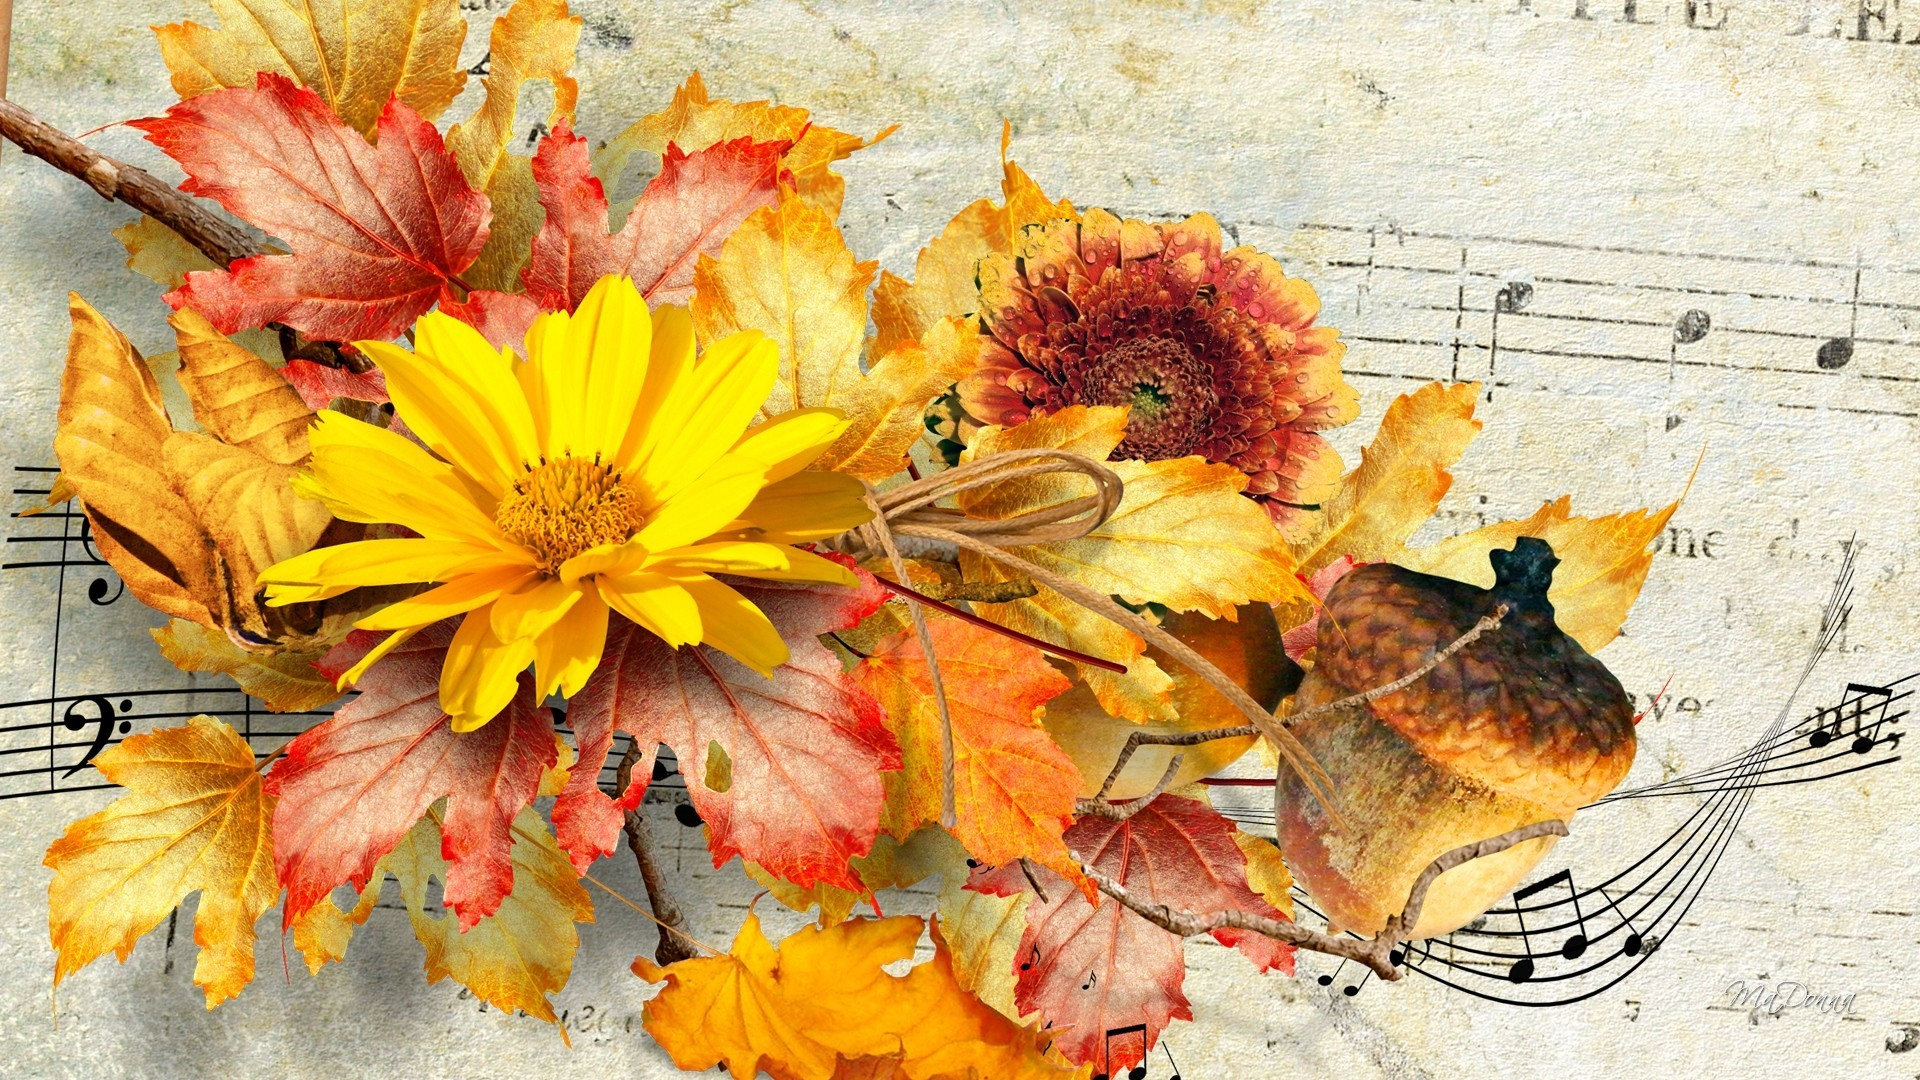 Flowers – Sunflowers Flowers Paper Autumn Fall Music Score Nuts Leaves Wallpaper  Flower Android for HD